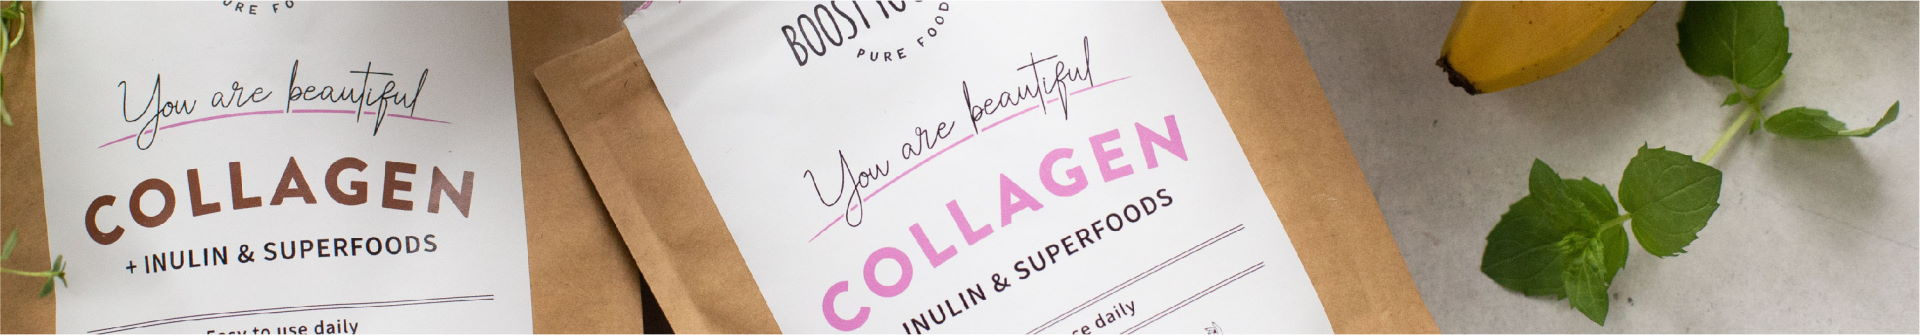 Boost Yourself Collagen